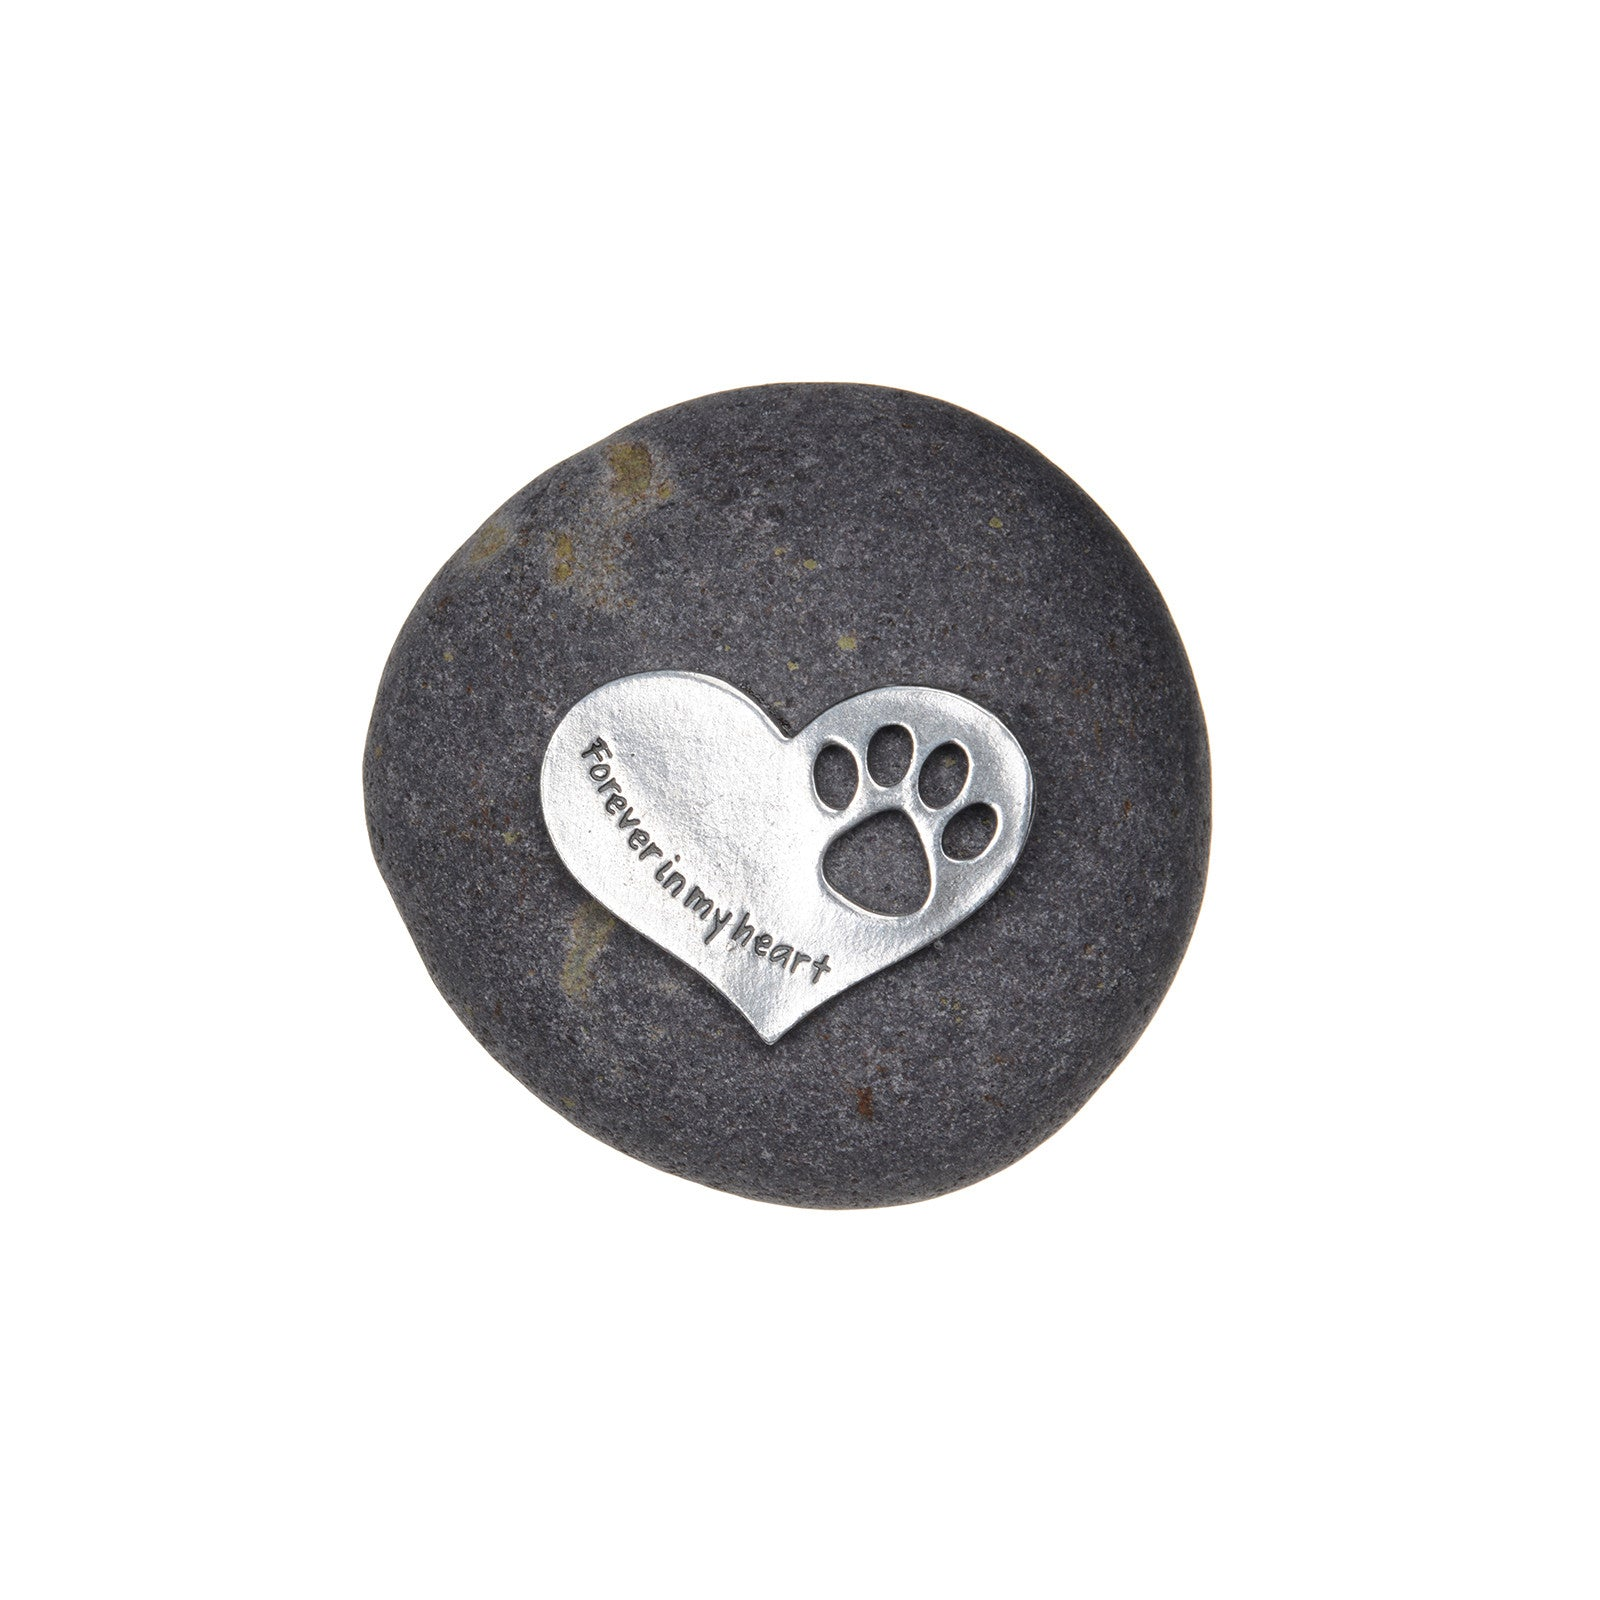 Pet Memorial Gift Forever in My Heart Paw Print Stone for Dogs or Cats - Sympathy Remembrance Gift by Whitney Howard Designs - Whitney Howard Designs